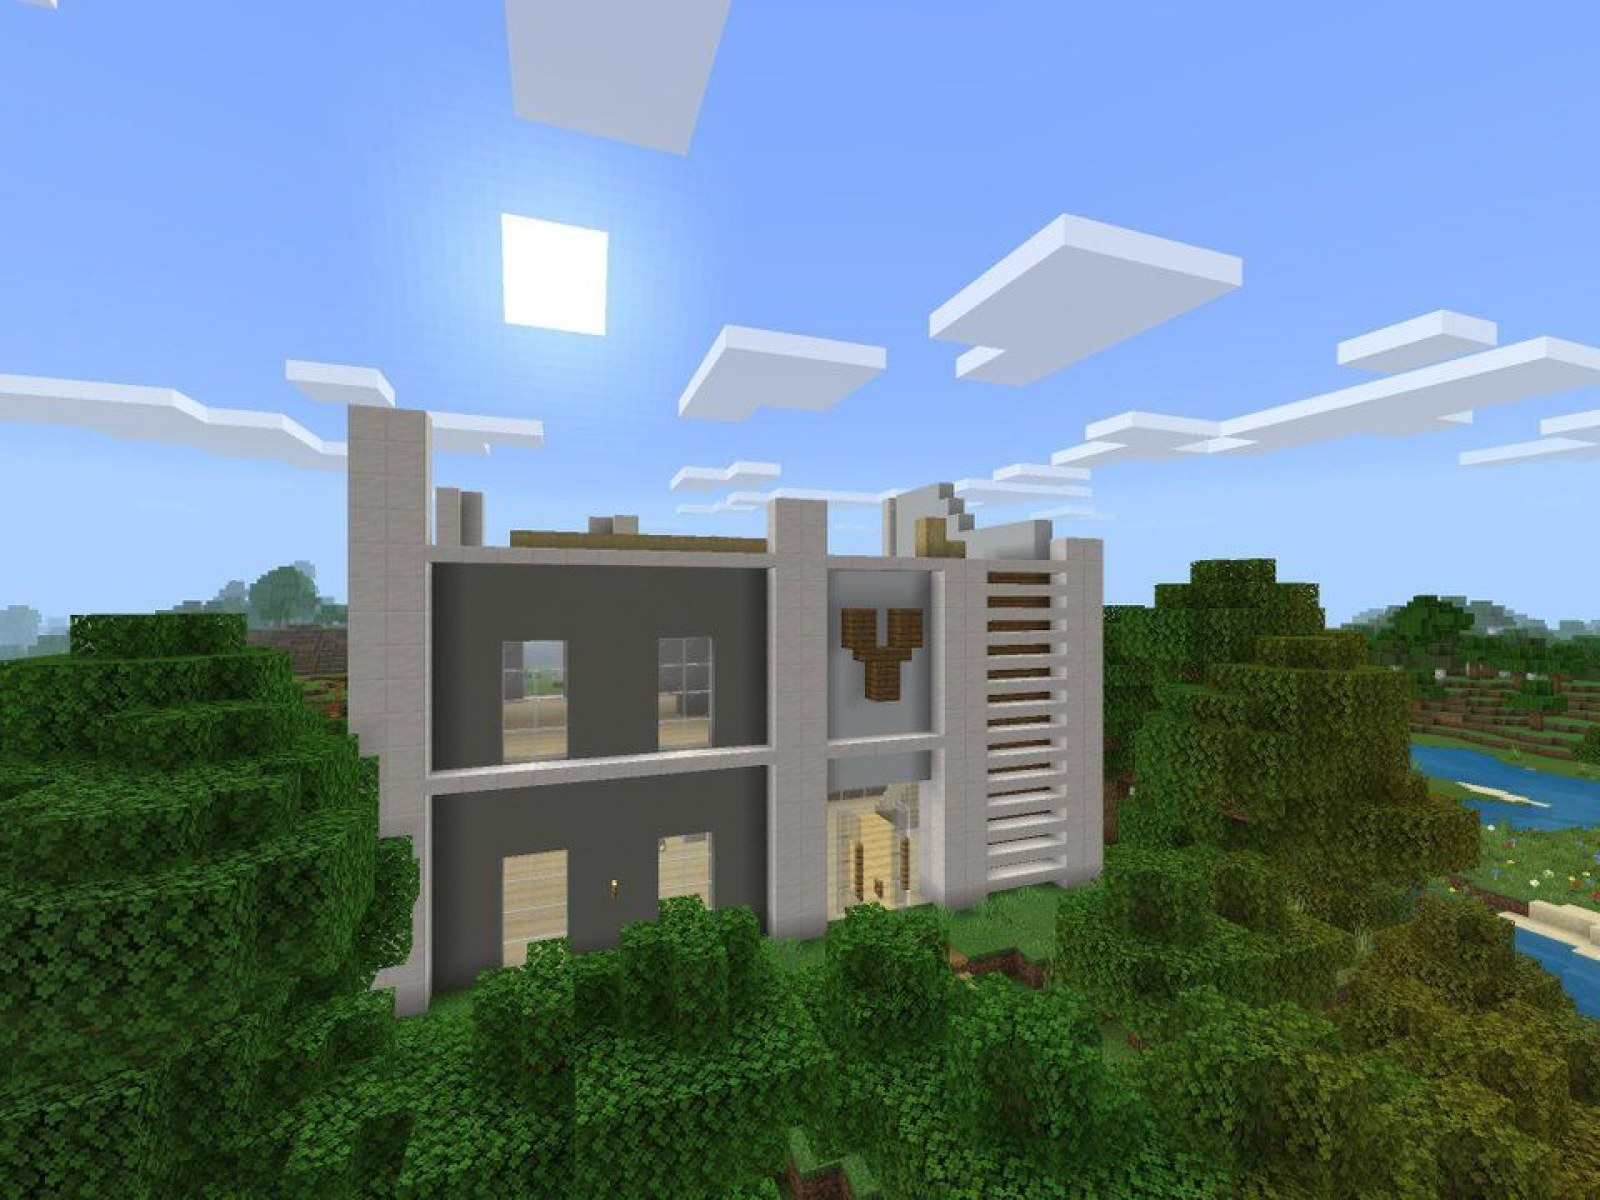 Modern Minecraft Houses: 10 Building Ideas To Stoke Your ...